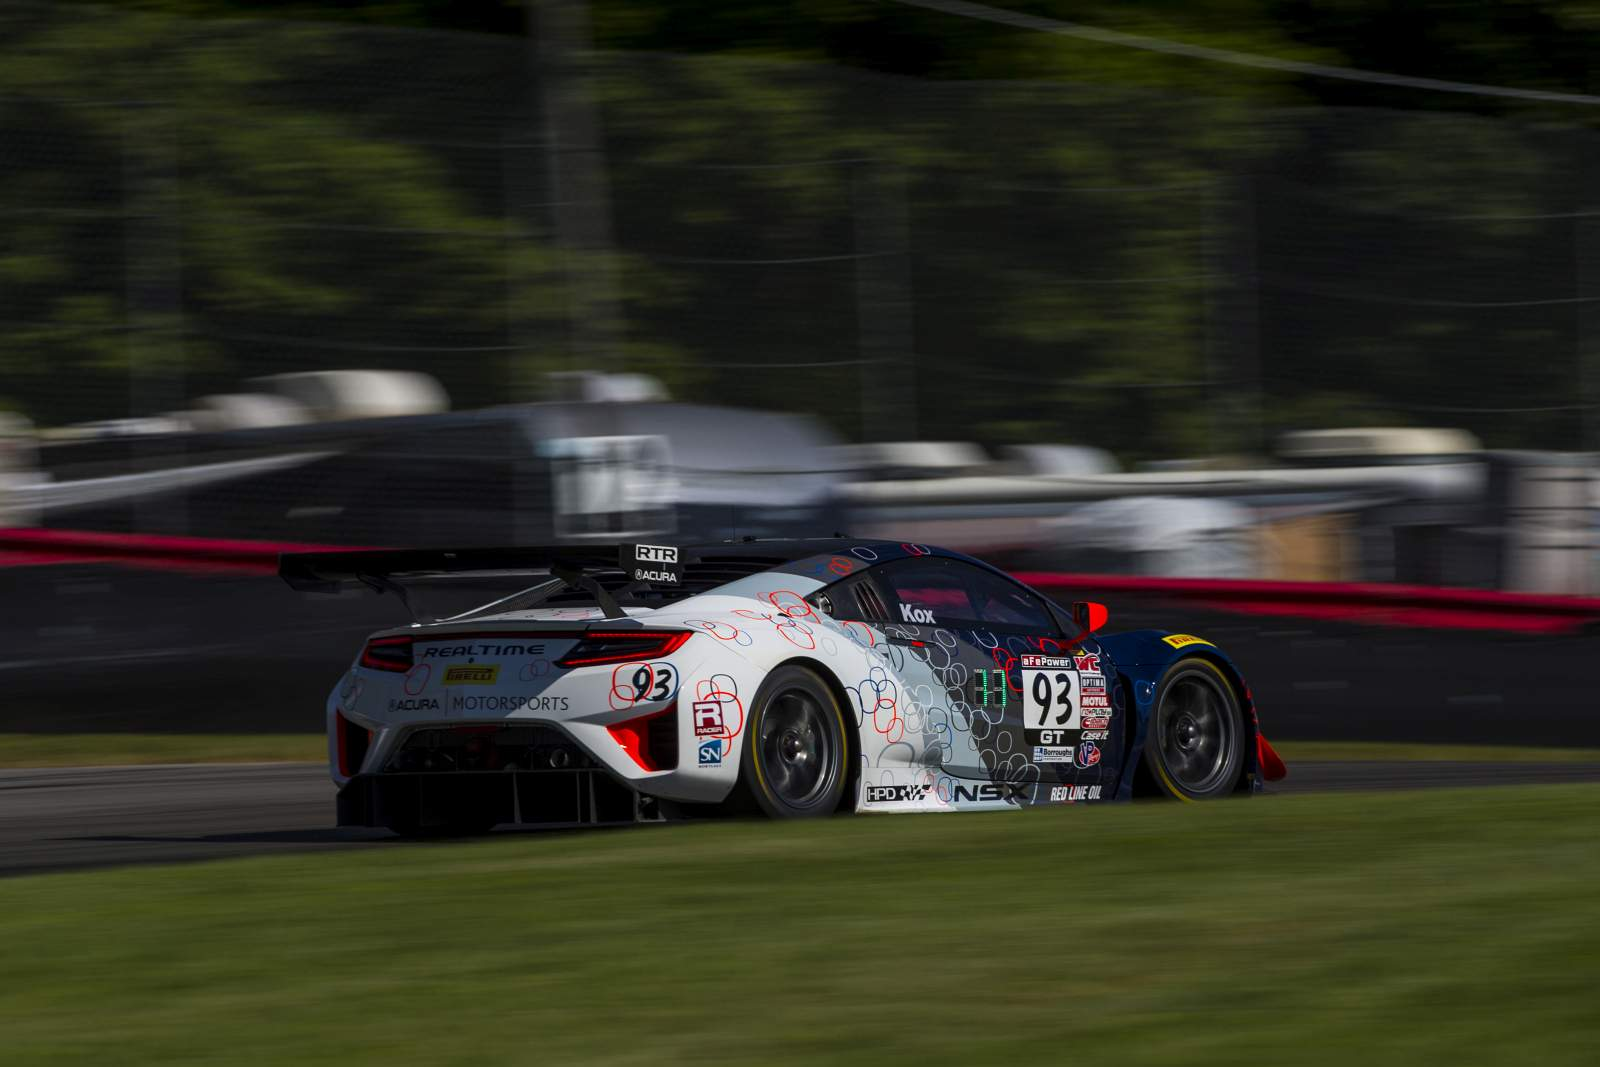 peter-kox-realtime-racing-pirelli-world-challenge-mid-ohio-49